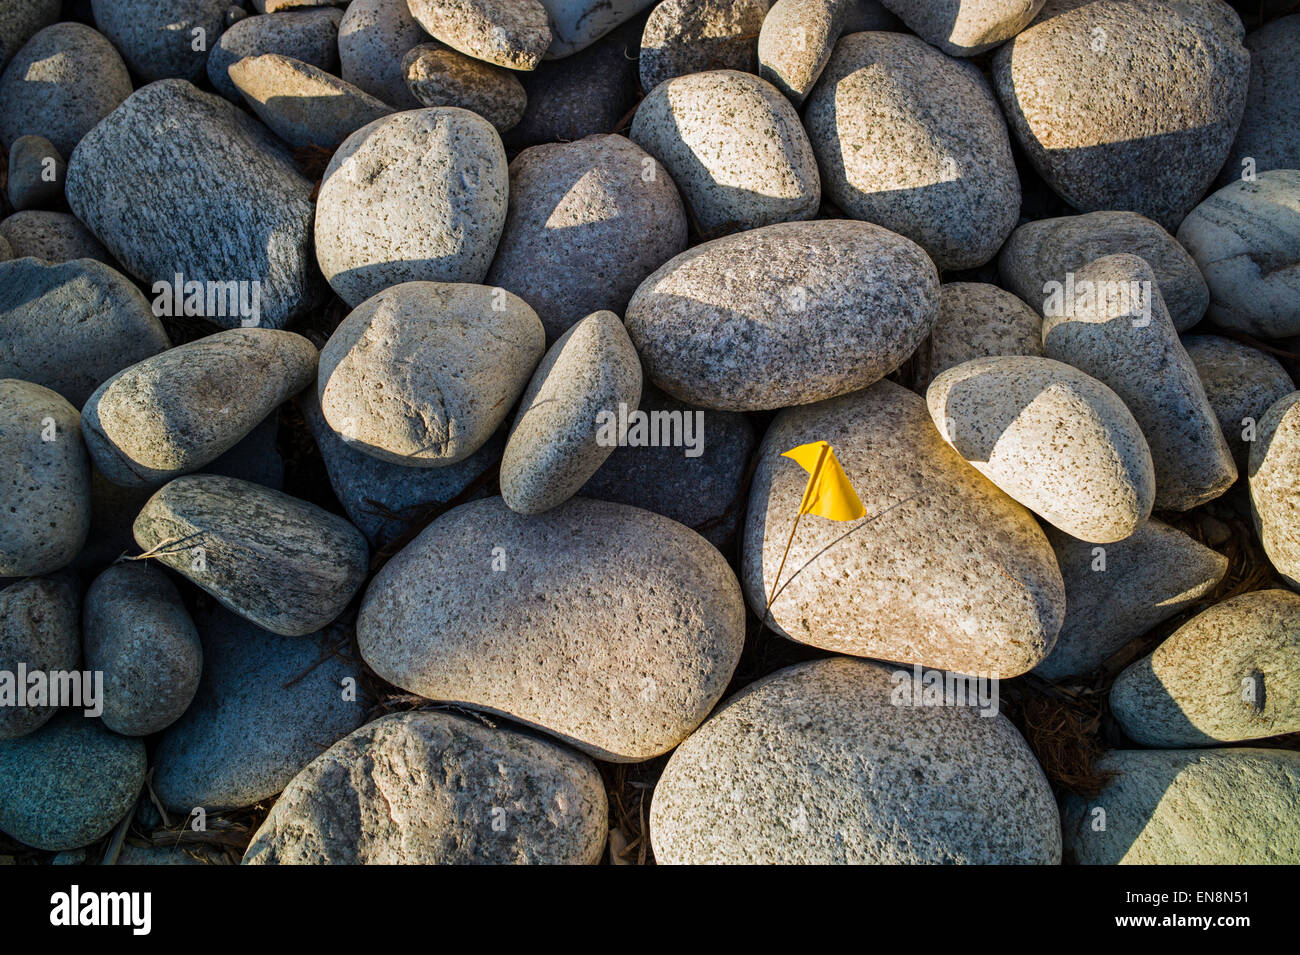 Stones In The Garden River rocks used as landscaping stones in the garden of a craftsman river rocks used as landscaping stones in the garden of a craftsman style residential home in colorado usa workwithnaturefo